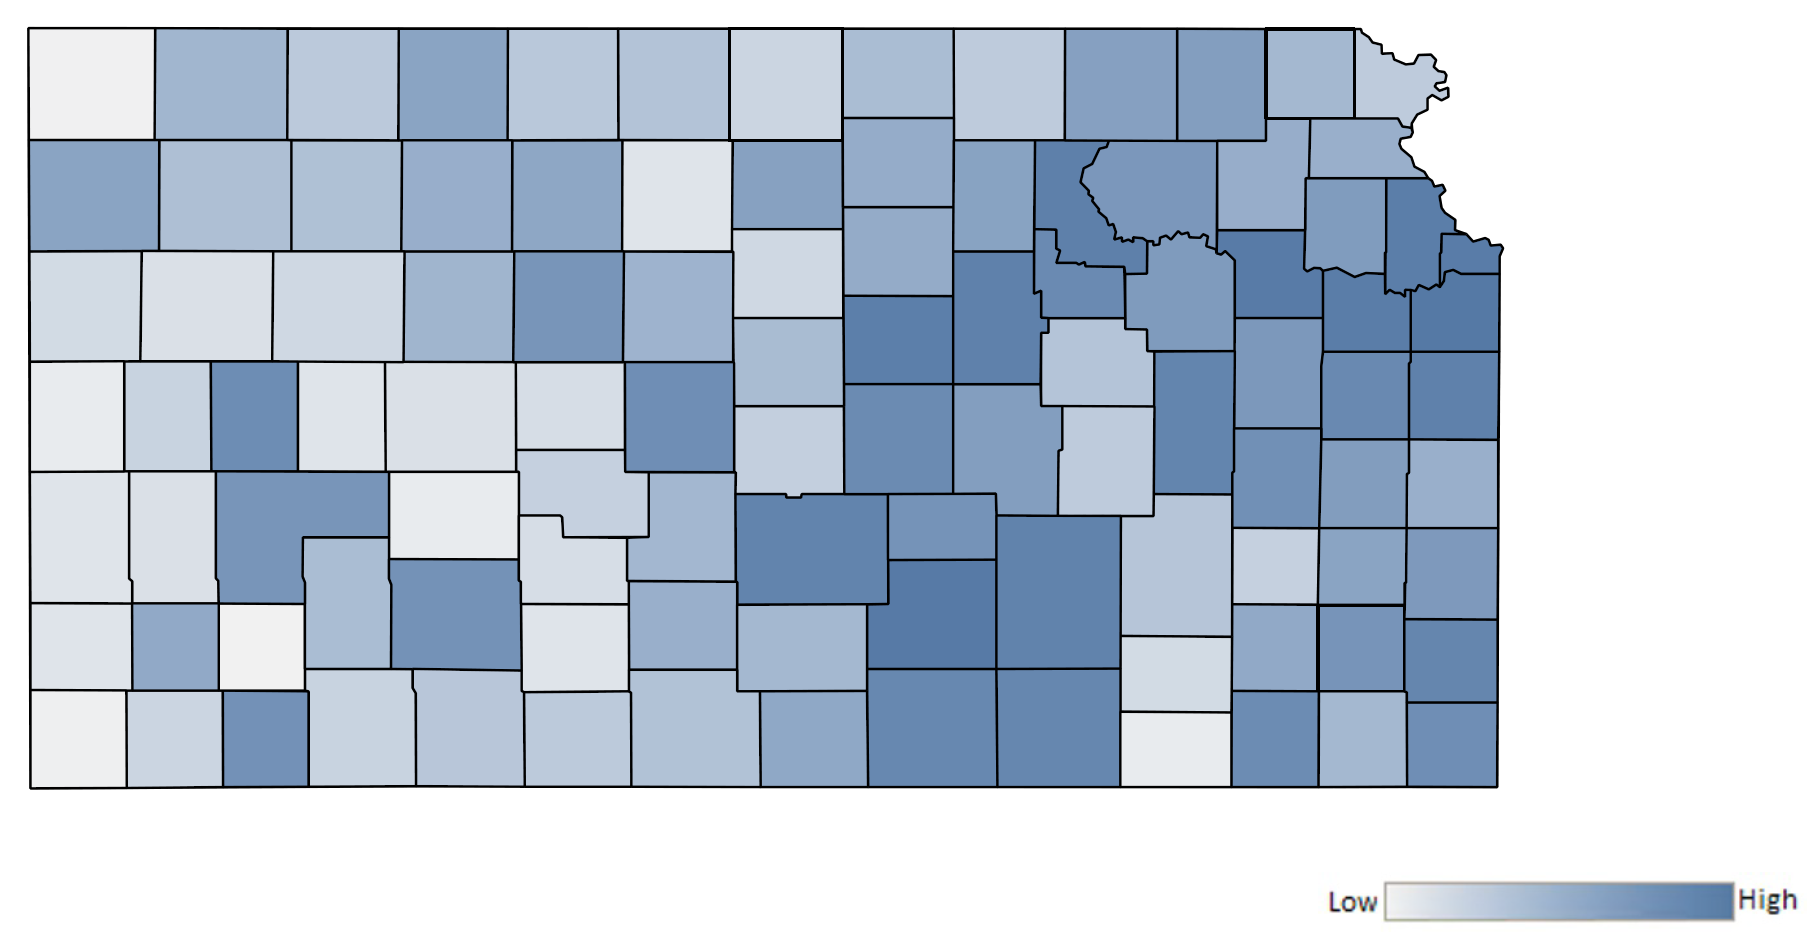 Map of Kansas counties indicating relative number of complaints from low to high. See attached CSV file for complaint data by jurisdiction.